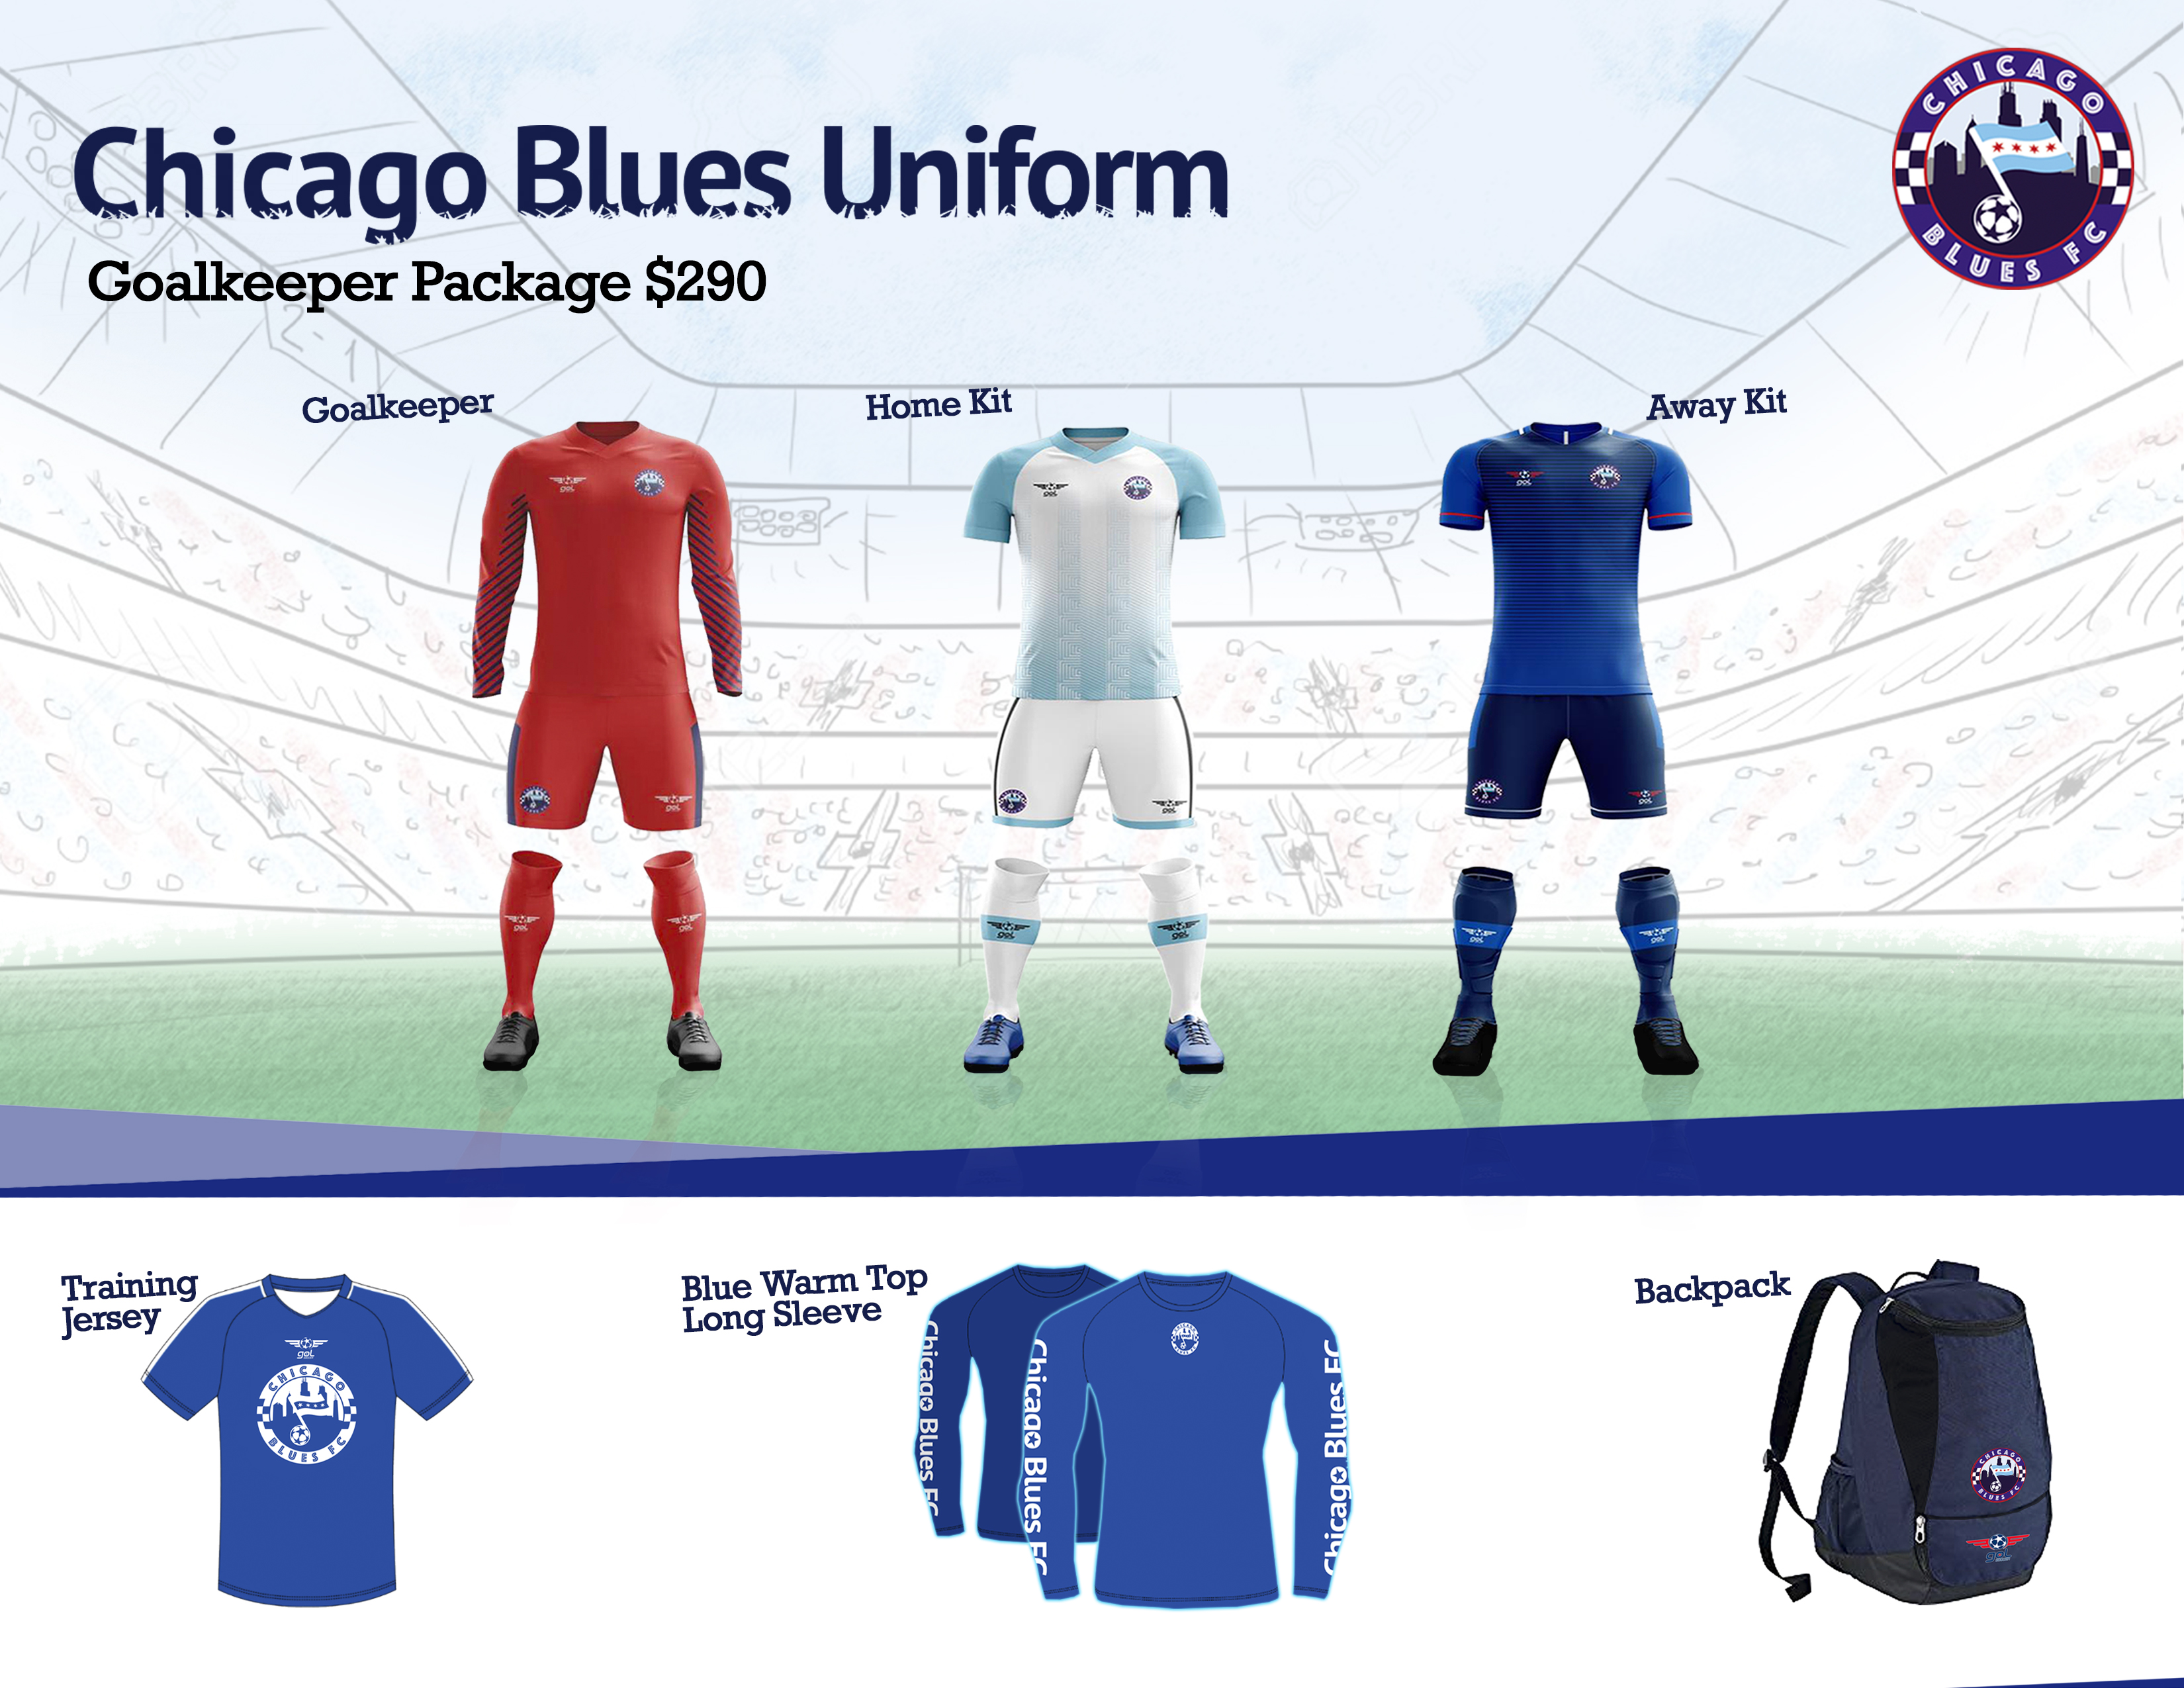 Goalkeeper Package Uniform